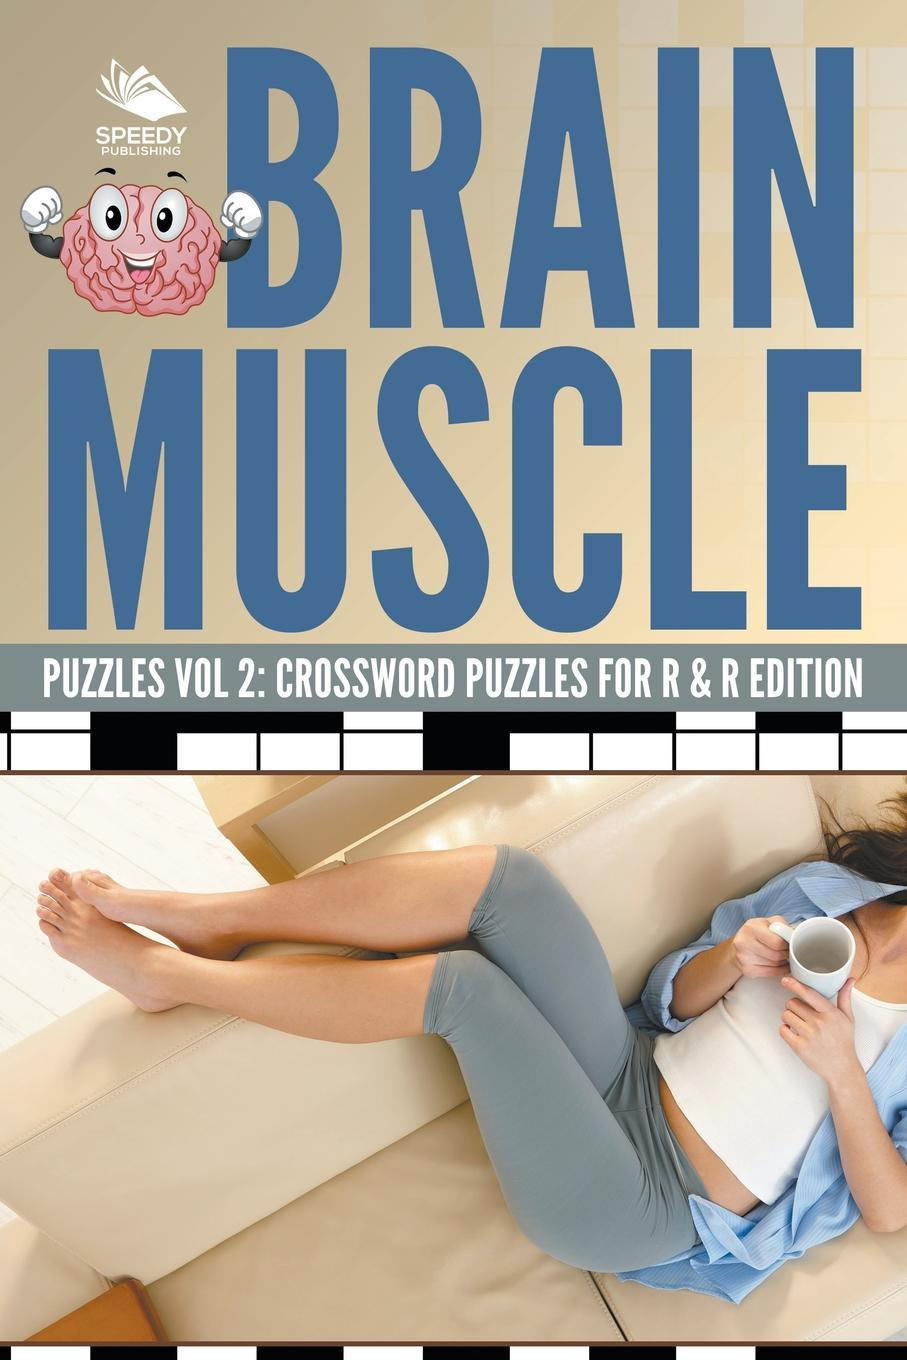 лучшая цена Speedy Publishing LLC Brain Muscle Puzzles Vol 2. Crossword Puzzles for R & R Edition